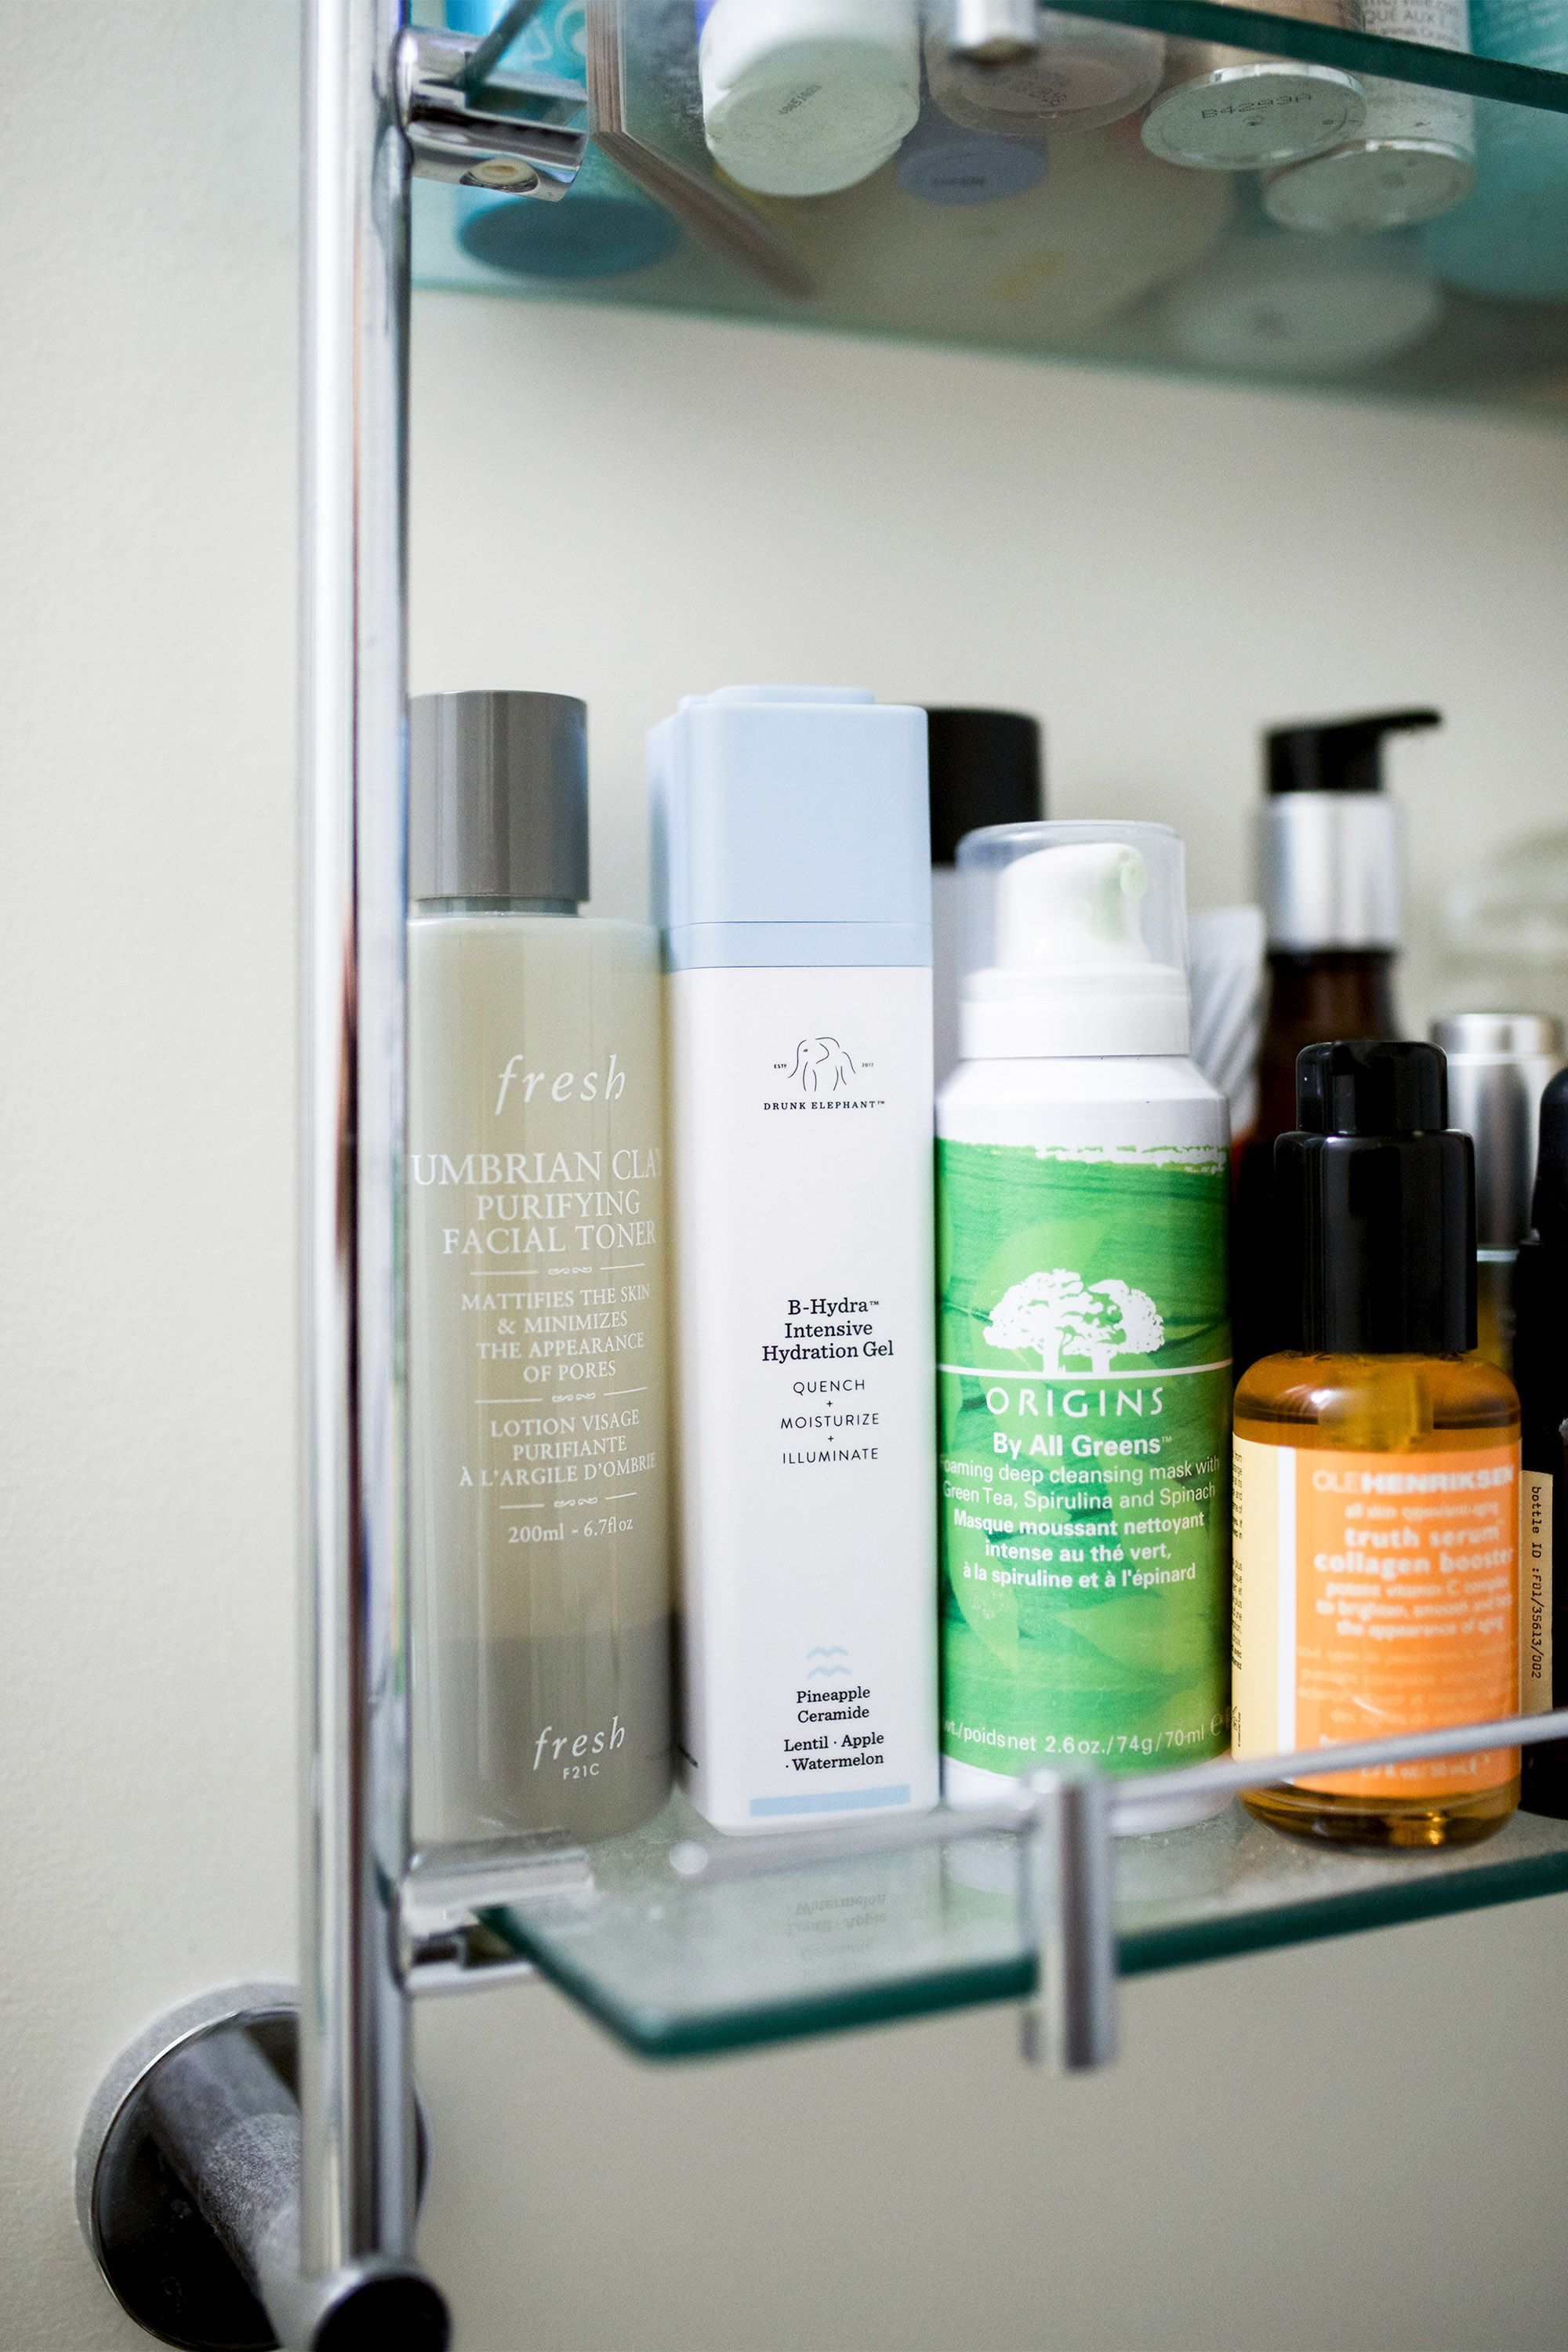 """<p>Now that I'm in my late 20s, and everyday stressors show up on my face like they never did before, I've started exploring ways in which I can incorporate solutions-oriented products into my morning and evening routines. I'm also much more aware of ingredients, and I'm always in the market for gentler, more natural beauty treatments that will seamlessly integrate into my daily life. So instead of only thinking about my skin at night, right before I fall asleep, I want to find skincare designed with a purpose or activity in mind—whether I'm working at the office, resting at home, traveling, spending time outdoors, or hitting the gym. </p><p><br></p><p>After lots of trial and error, I've found four products I love from the <a href=""""https://ad.doubleclick.net/ddm/clk/305438833;132531199;g"""" target=""""_blank"""">Natural Beauty</a> section at <a href=""""https://ad.doubleclick.net/ddm/clk/304808252;132531199;b"""" target=""""_blank"""">Sephora</a>—they fit perfectly into my regimen and busy days.</p>"""